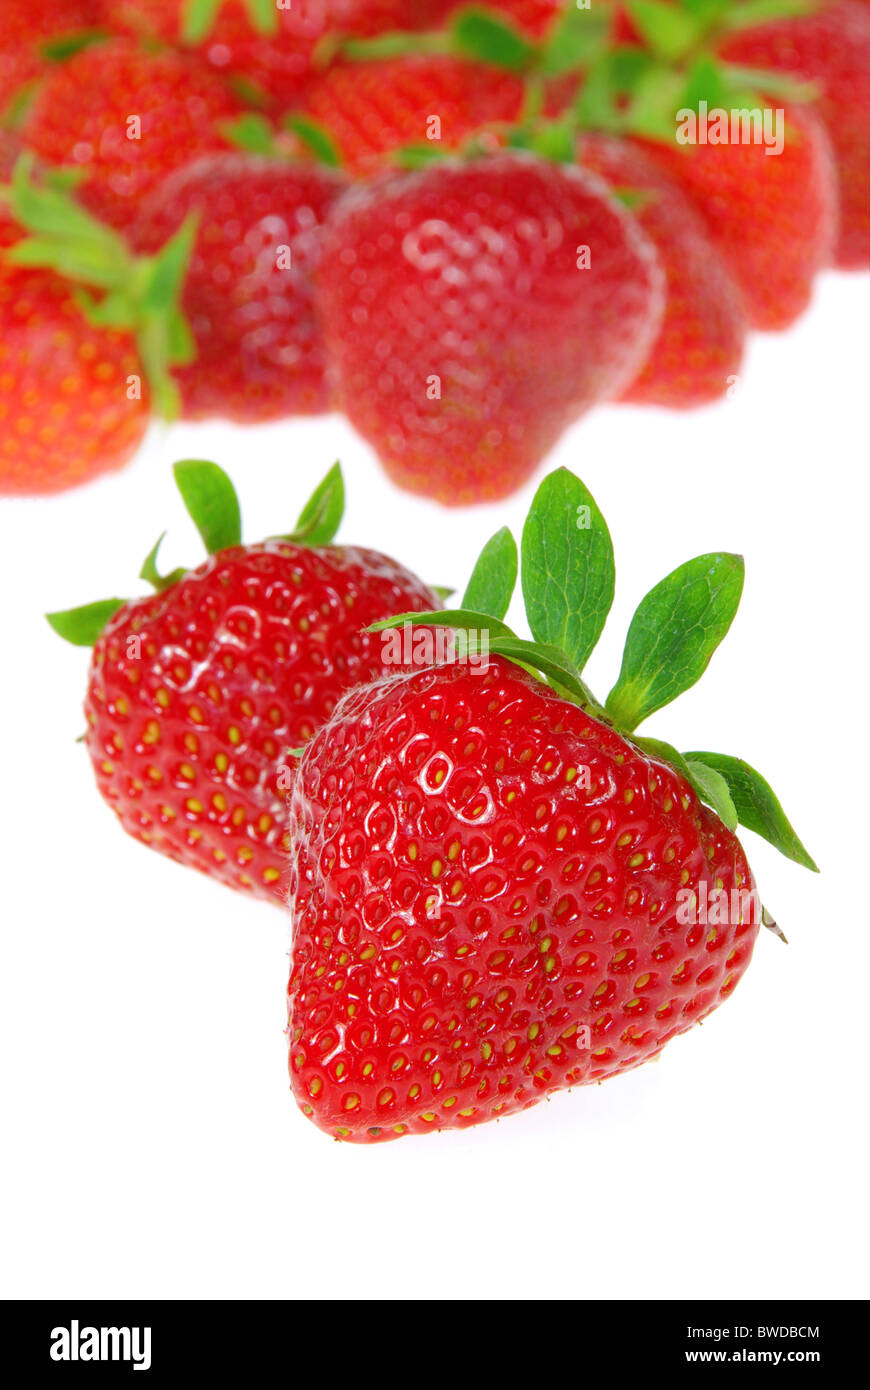 Erdbeere freigestellt - strawberry isolated 08 - Stock Image